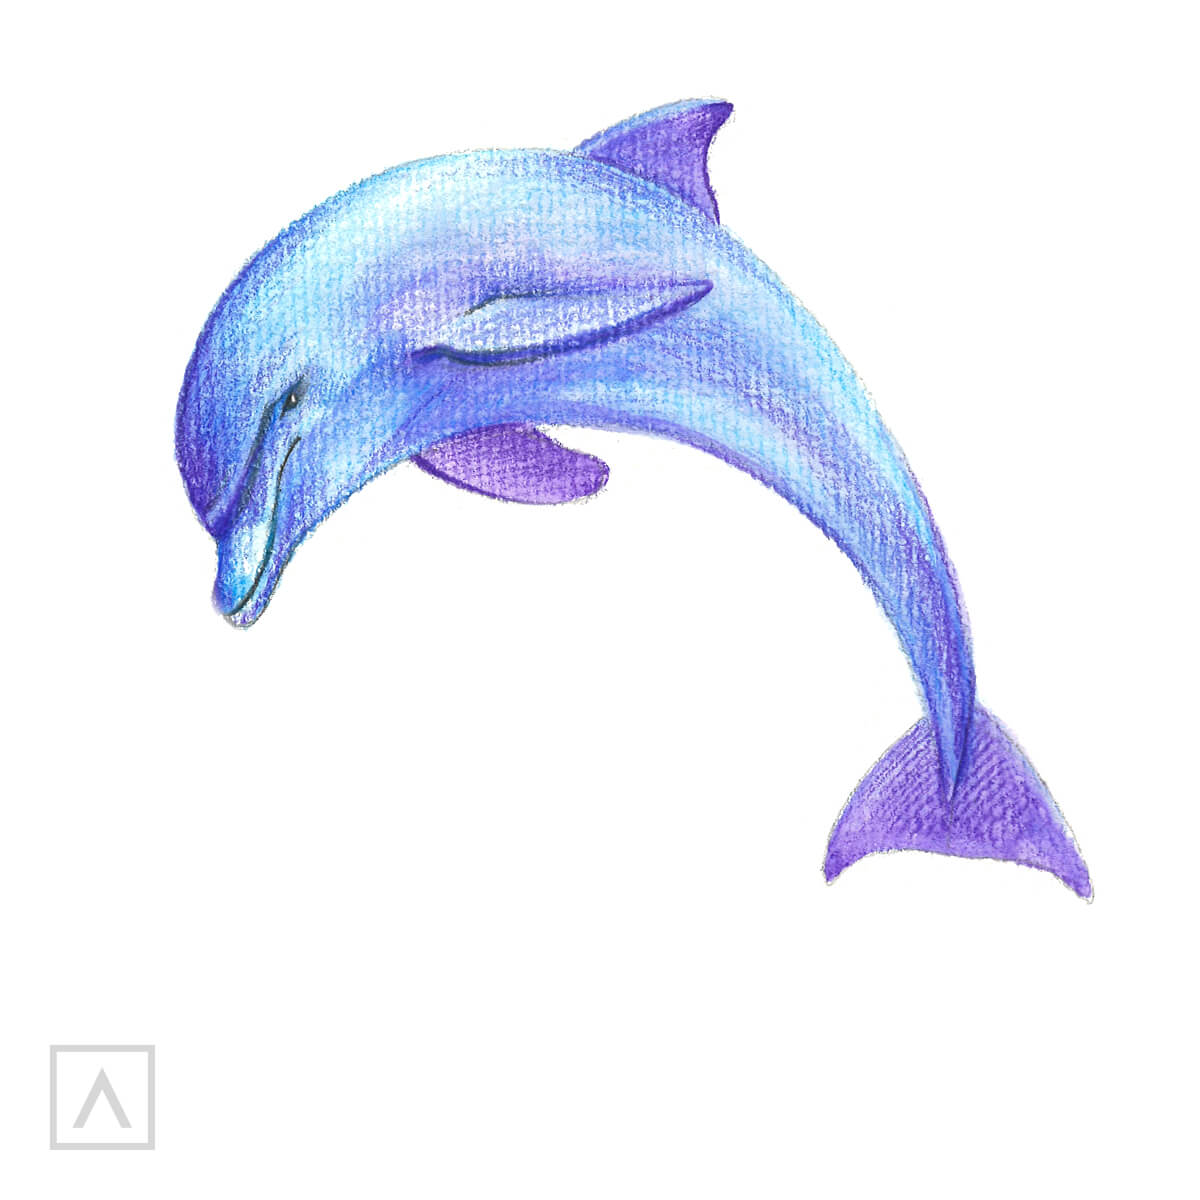 How to Draw a Dolphin - Step 6